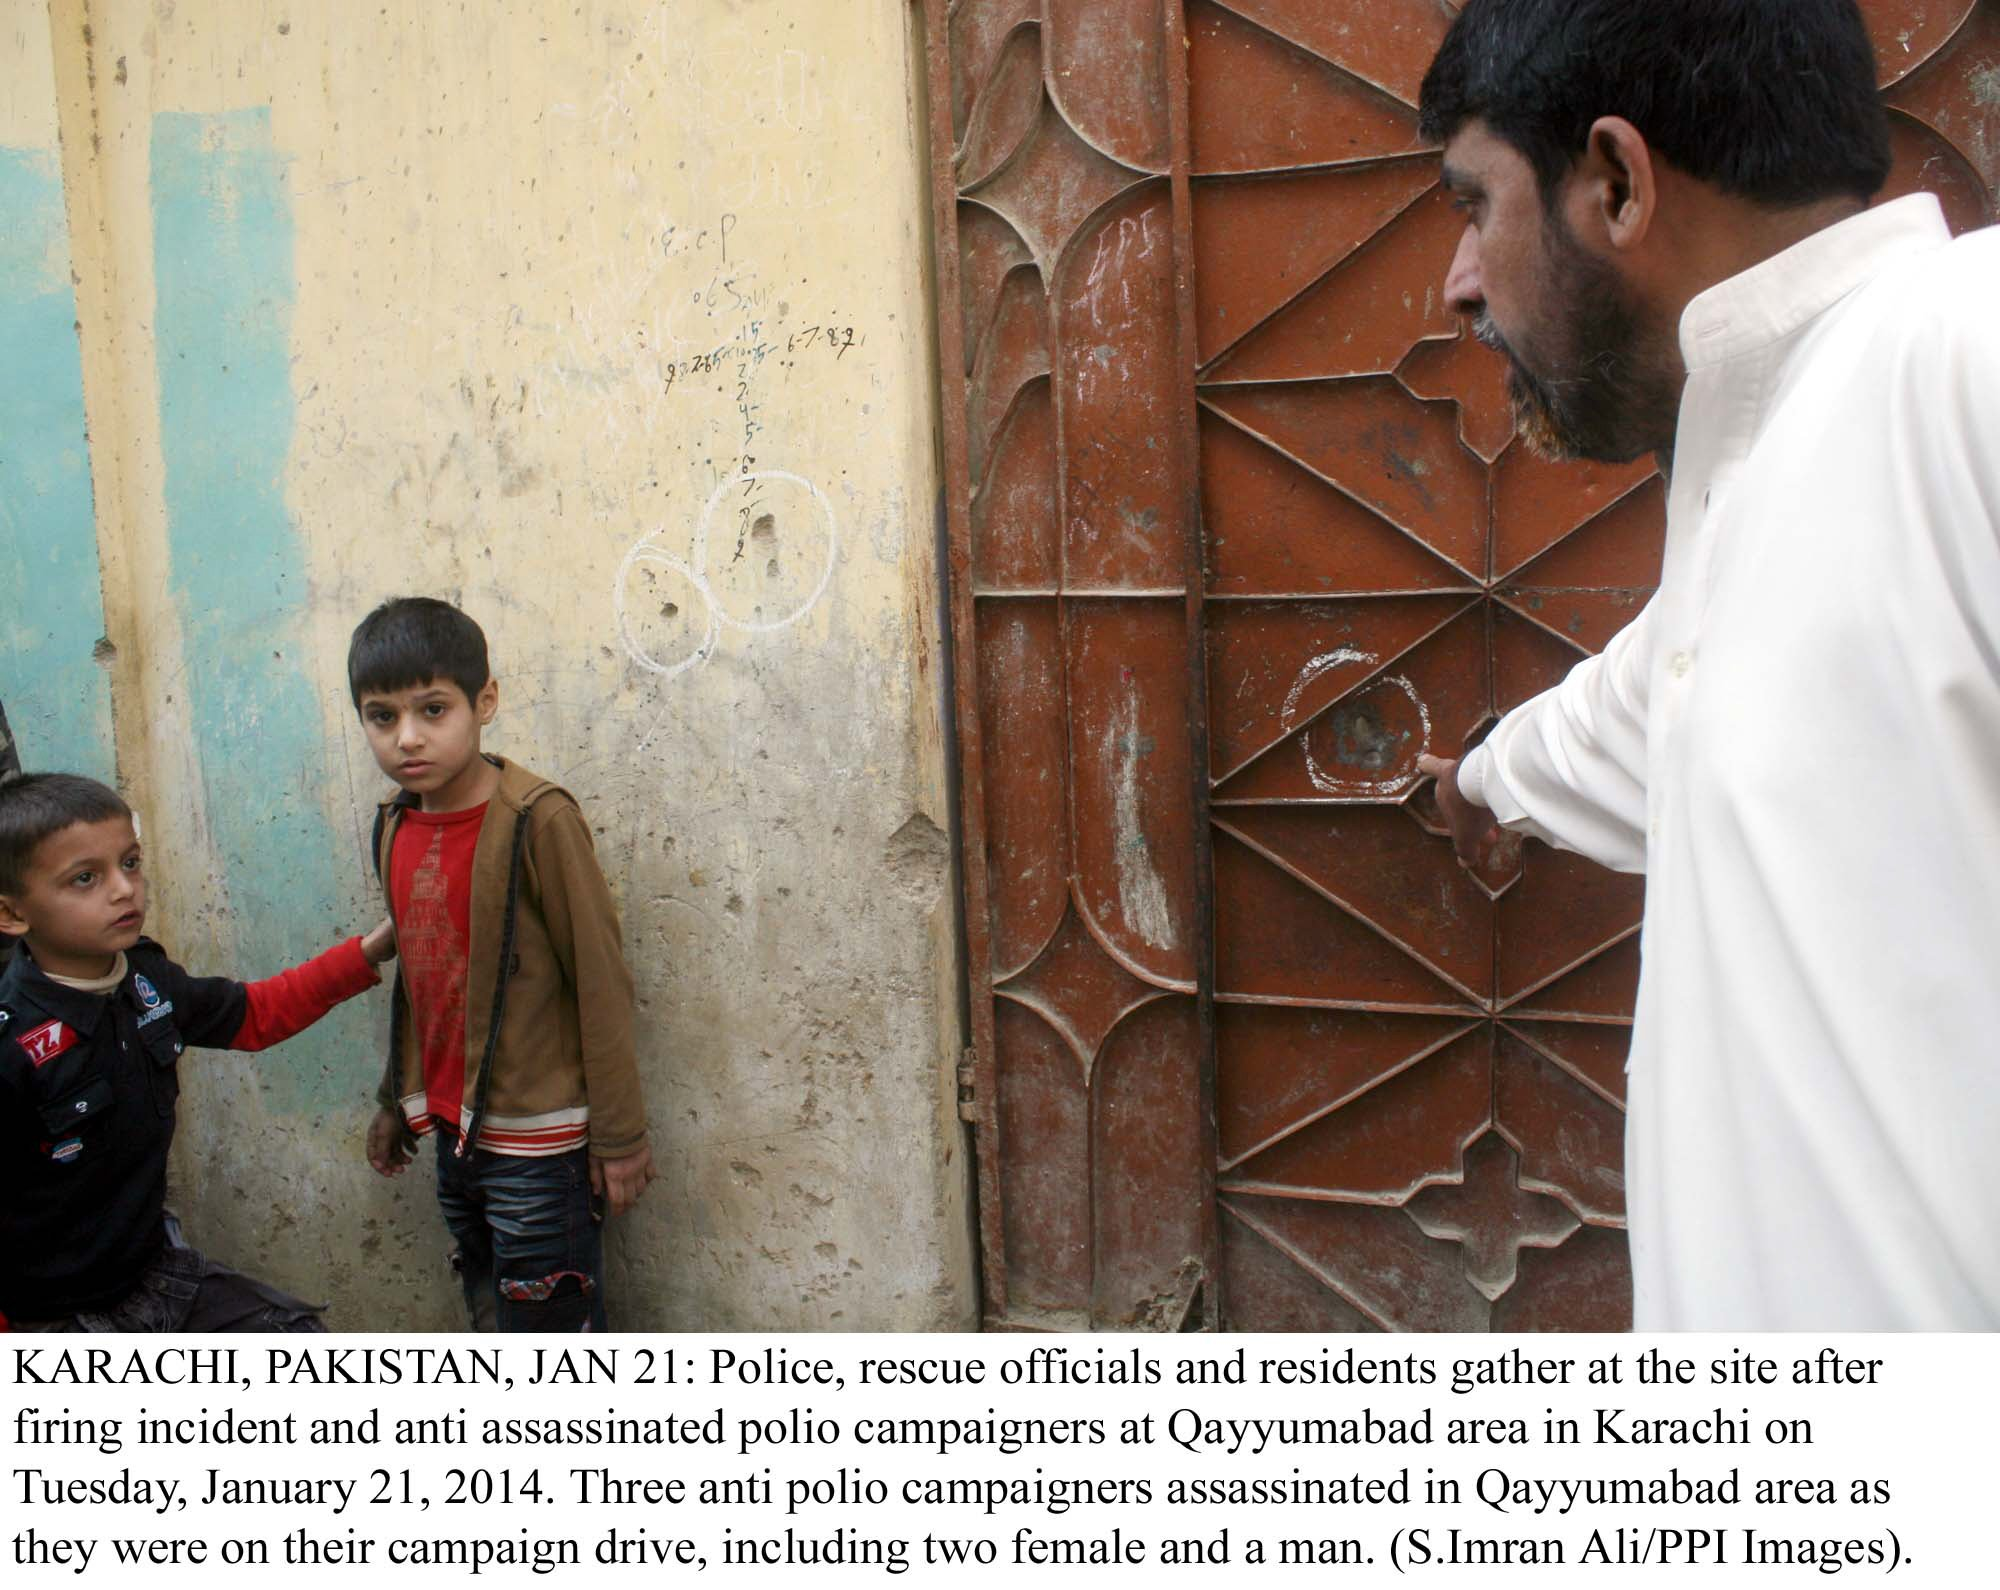 an official points to wards a bullet hole caused by the firing on polio workers in karachi on tuesday as two children look on photo ppi